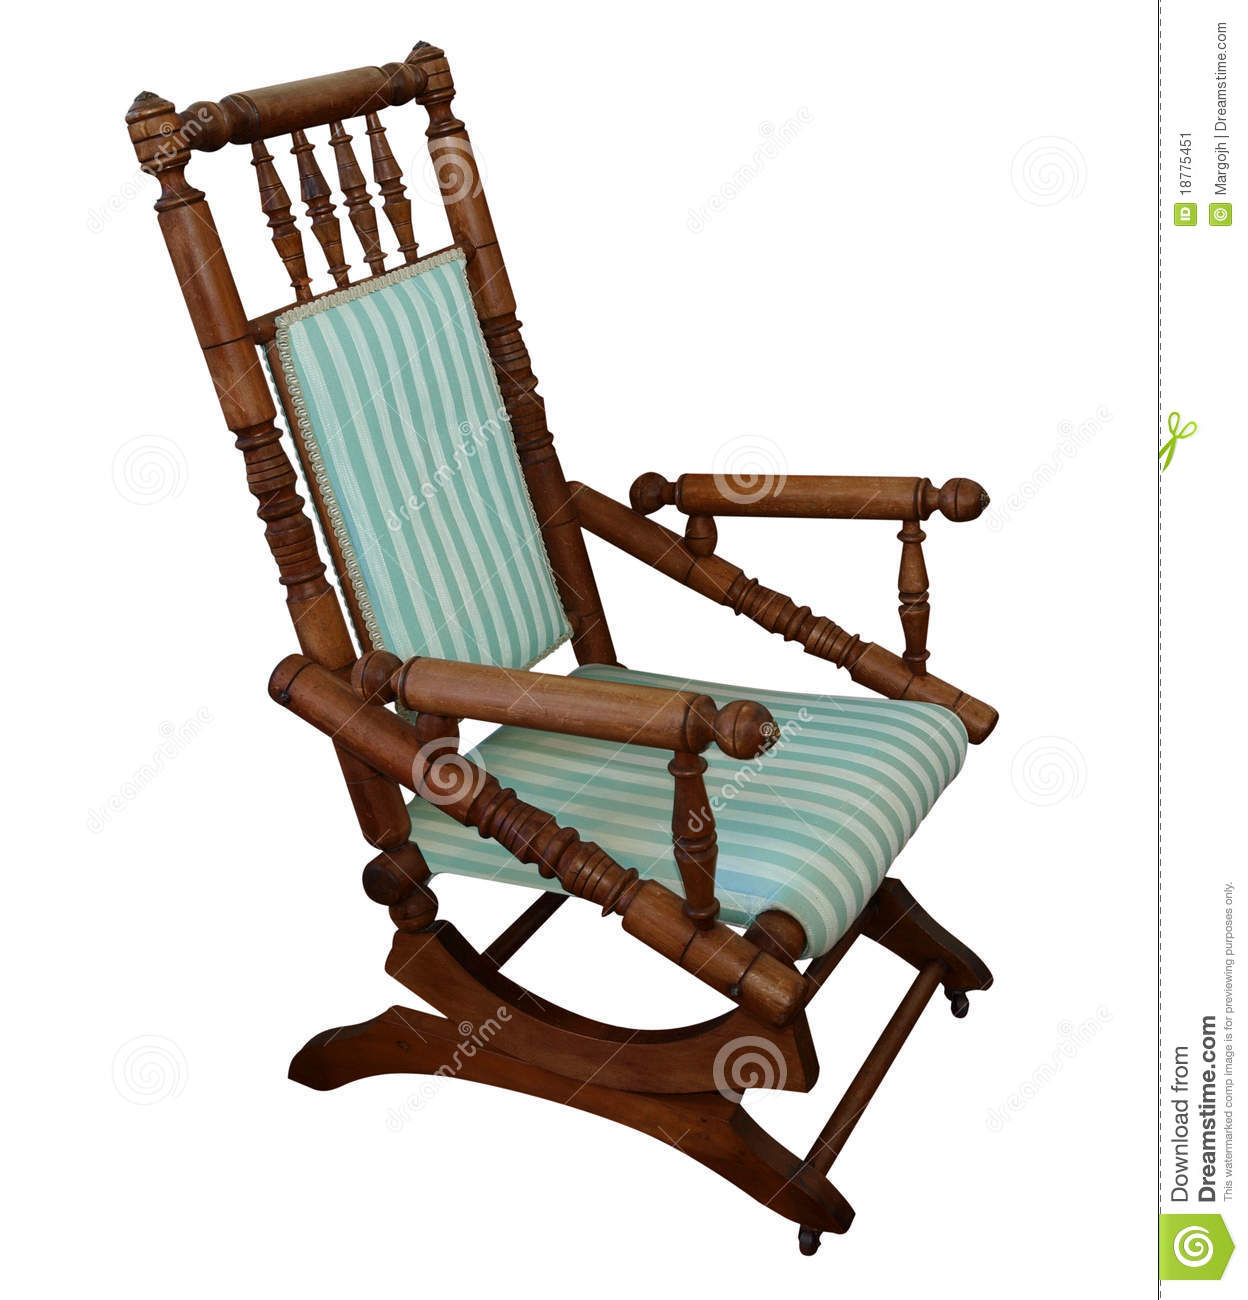 Antique Rocking Chair - Antique Rocking Chair Stock Image. Image Of Armchair - 18775451